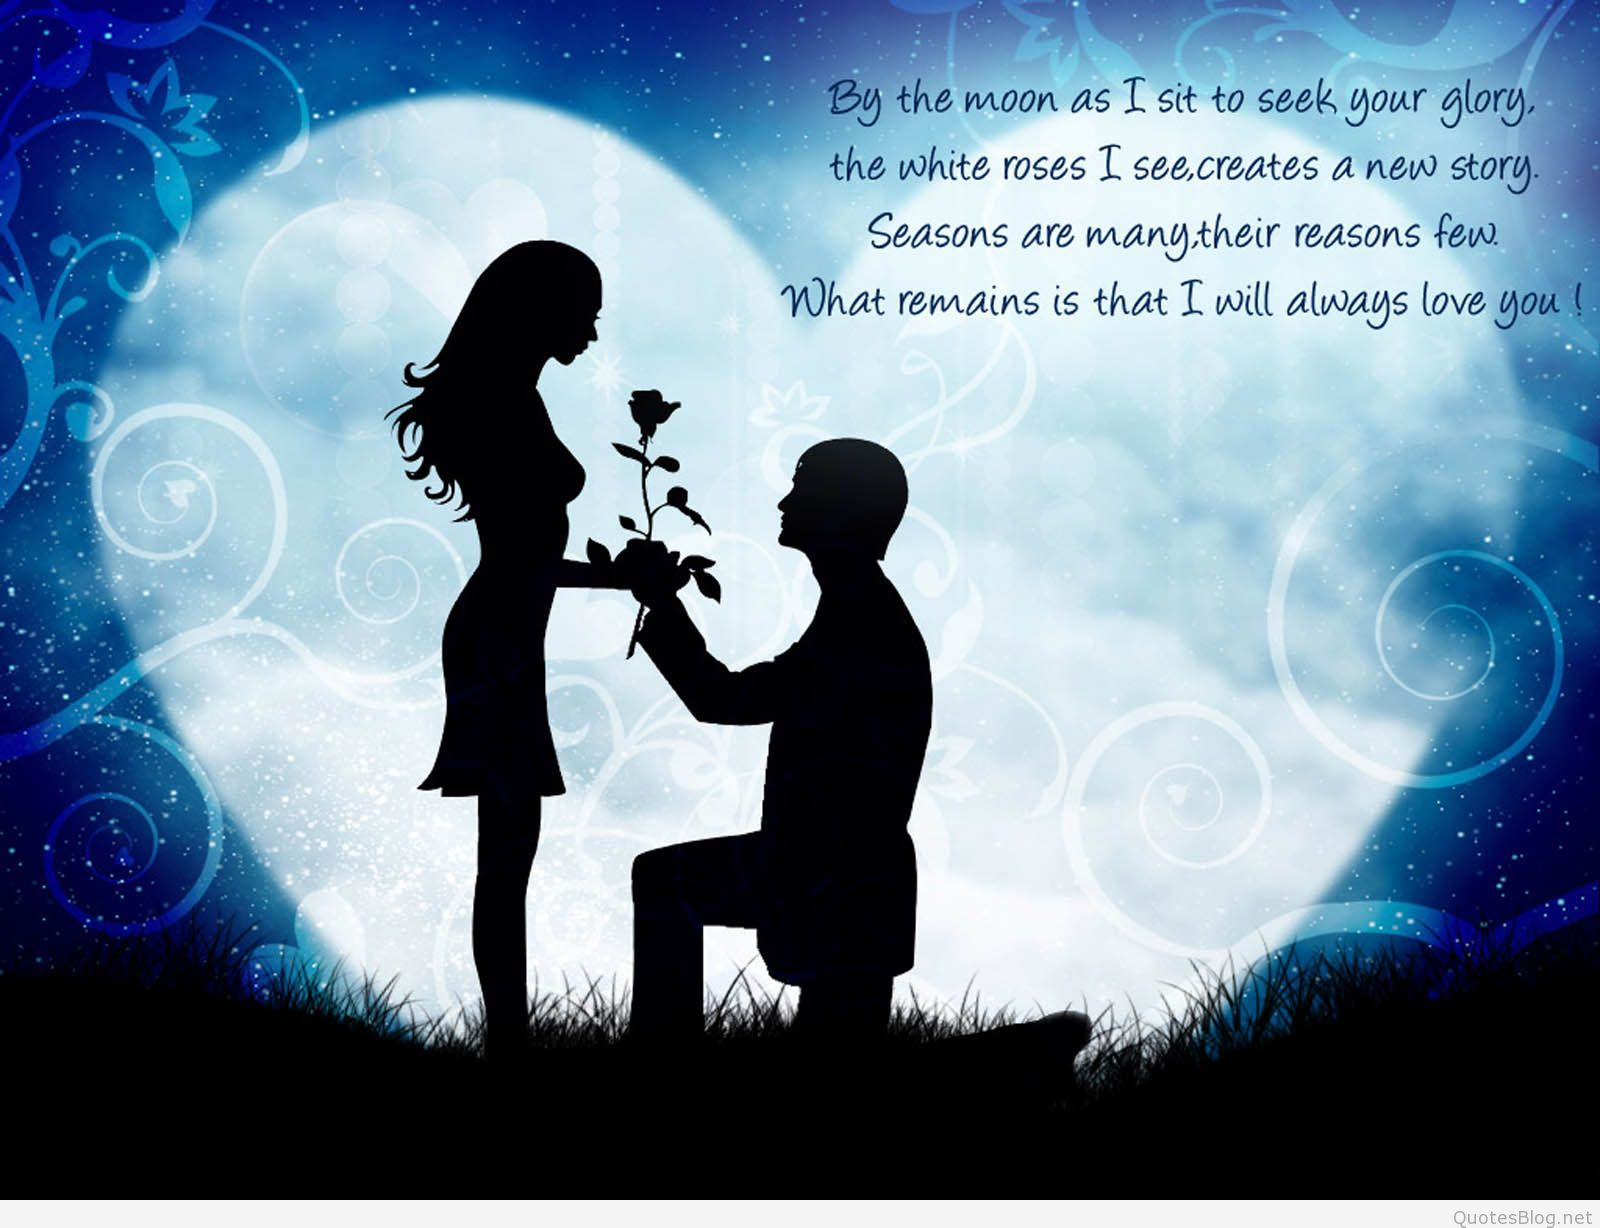 Best Love Wallpaper For Whatsapp Propose Day Message For Wife